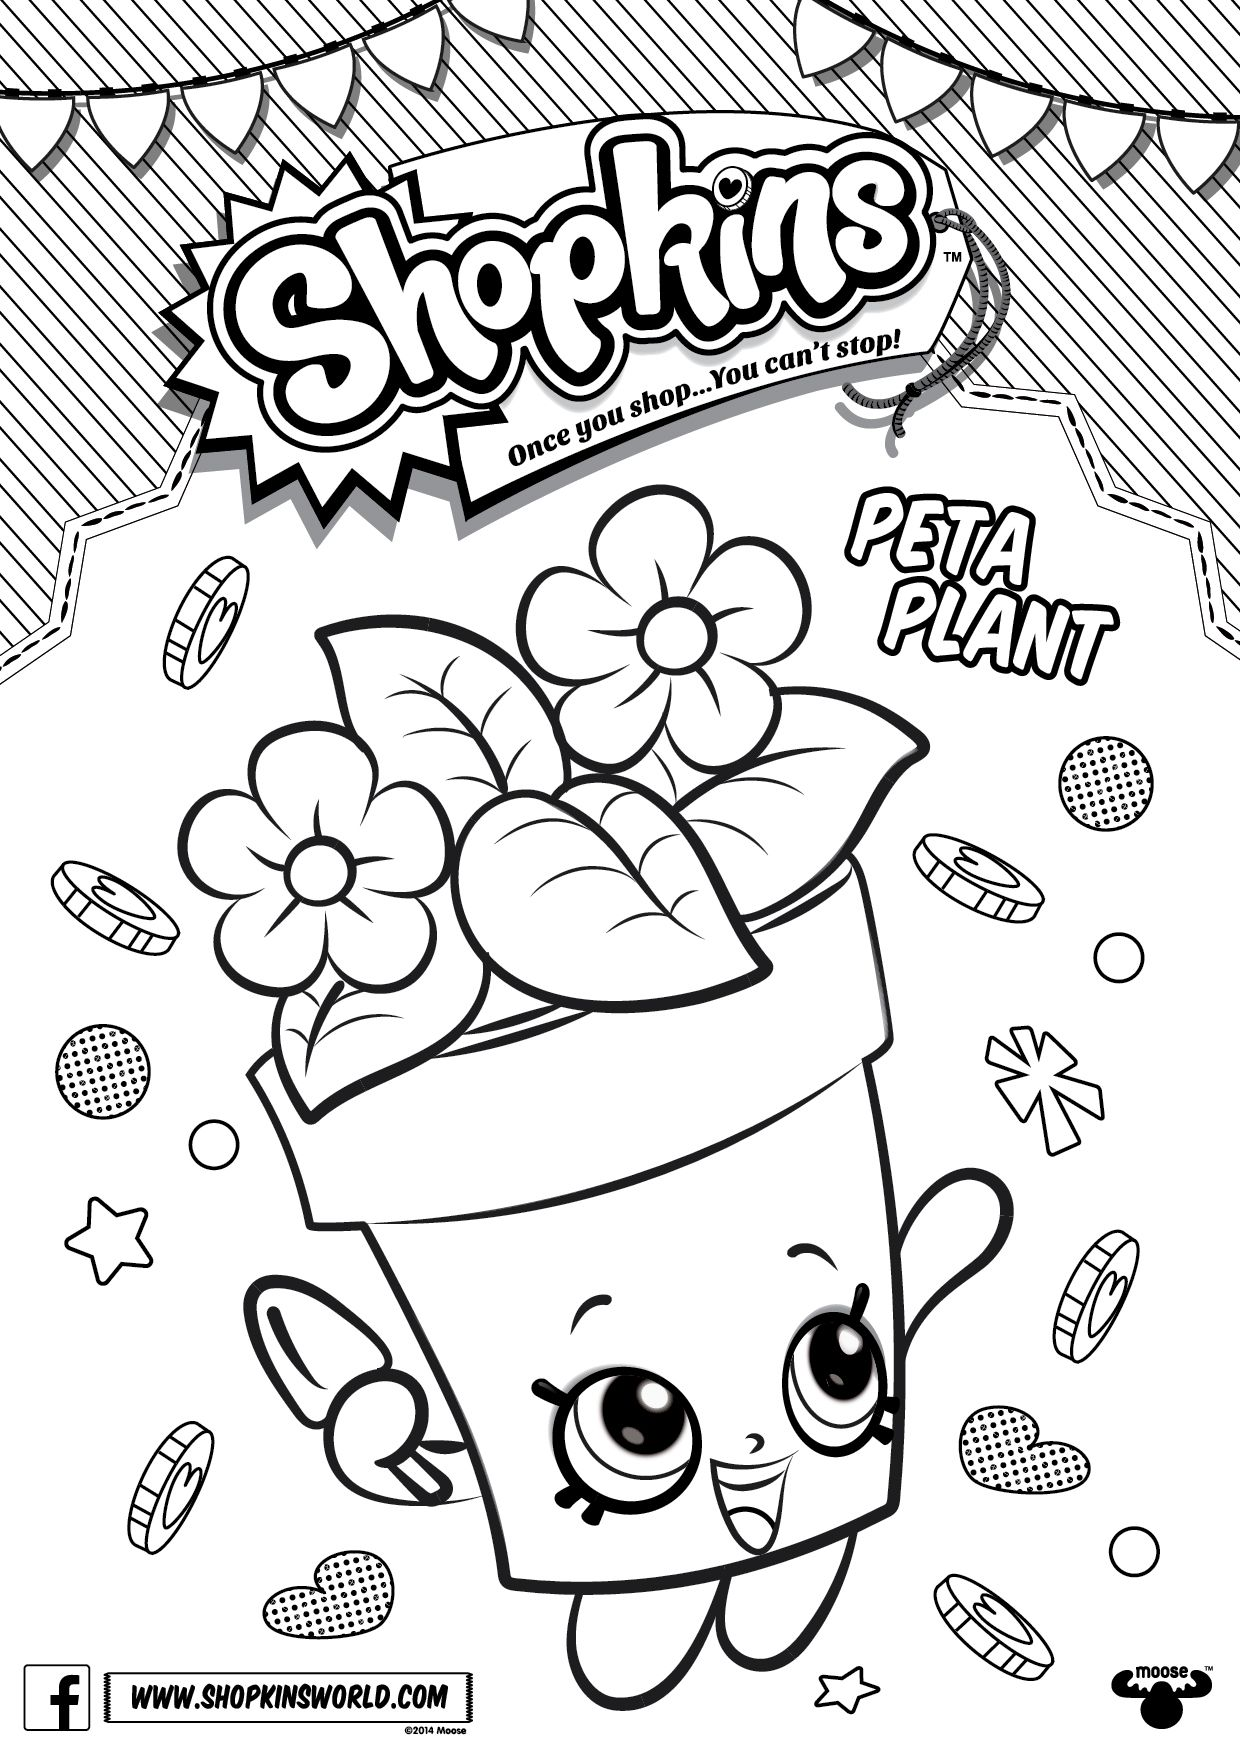 Shopkins Coloring Pages Shopkins Colouring Pages Shopkin